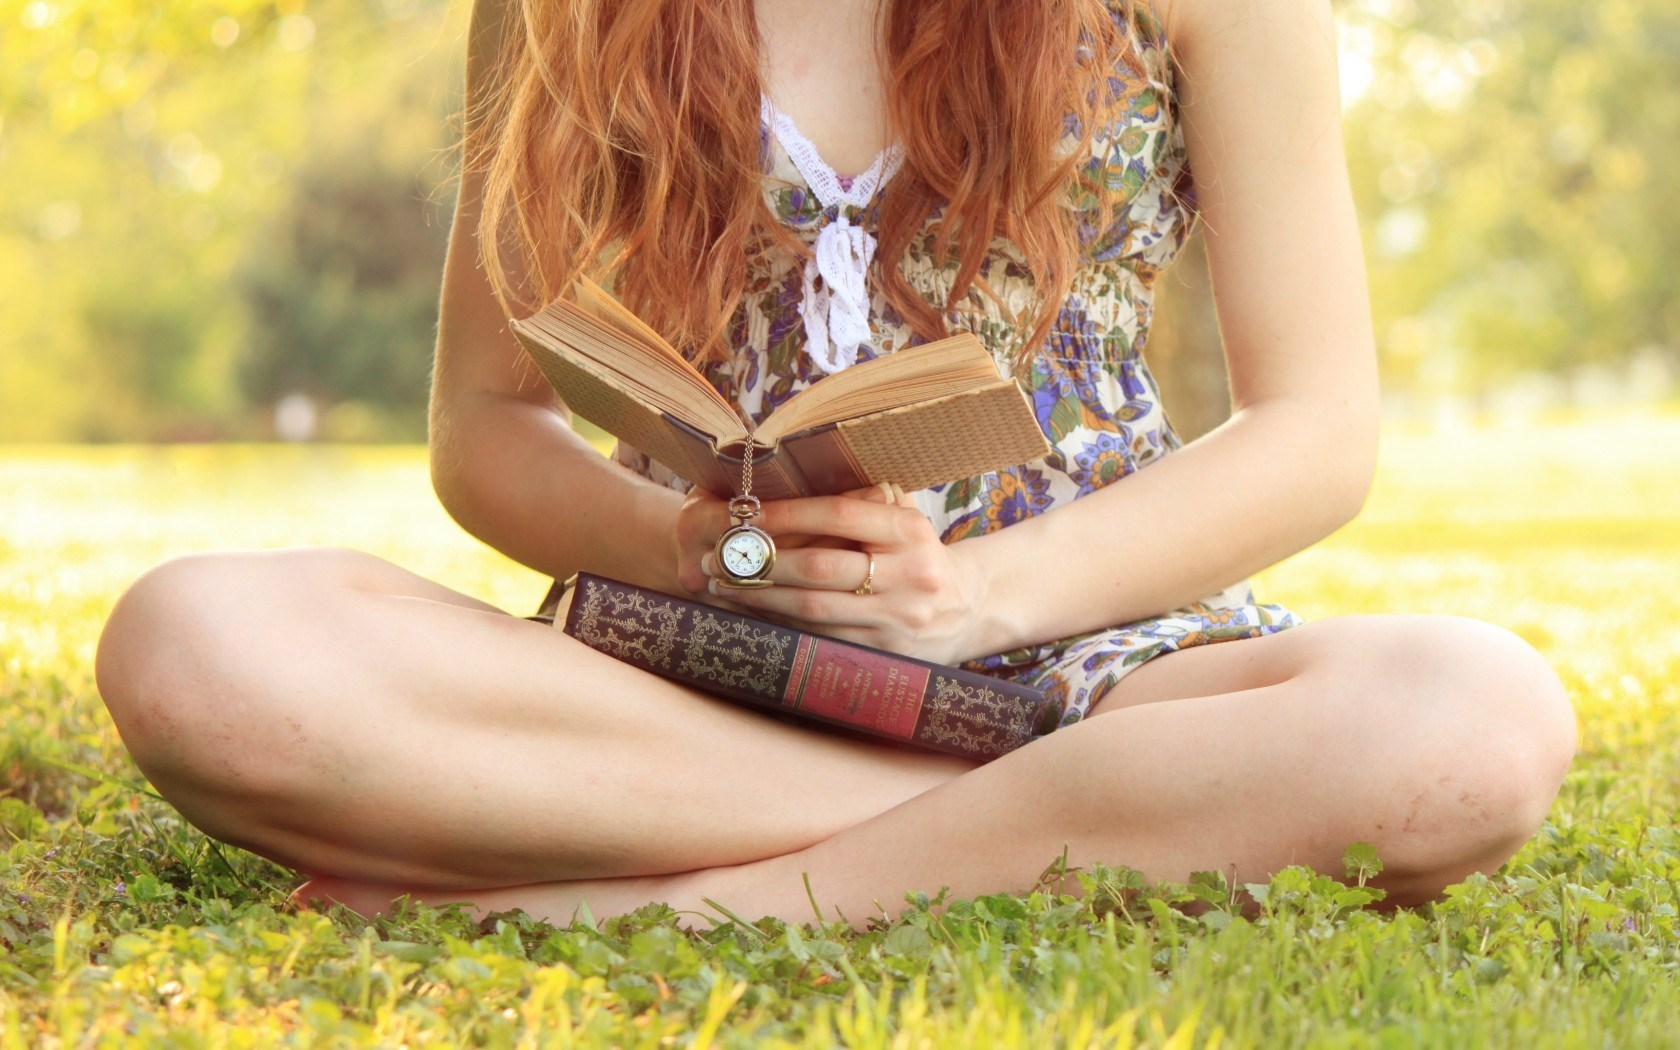 Girl Redhead Books Watch